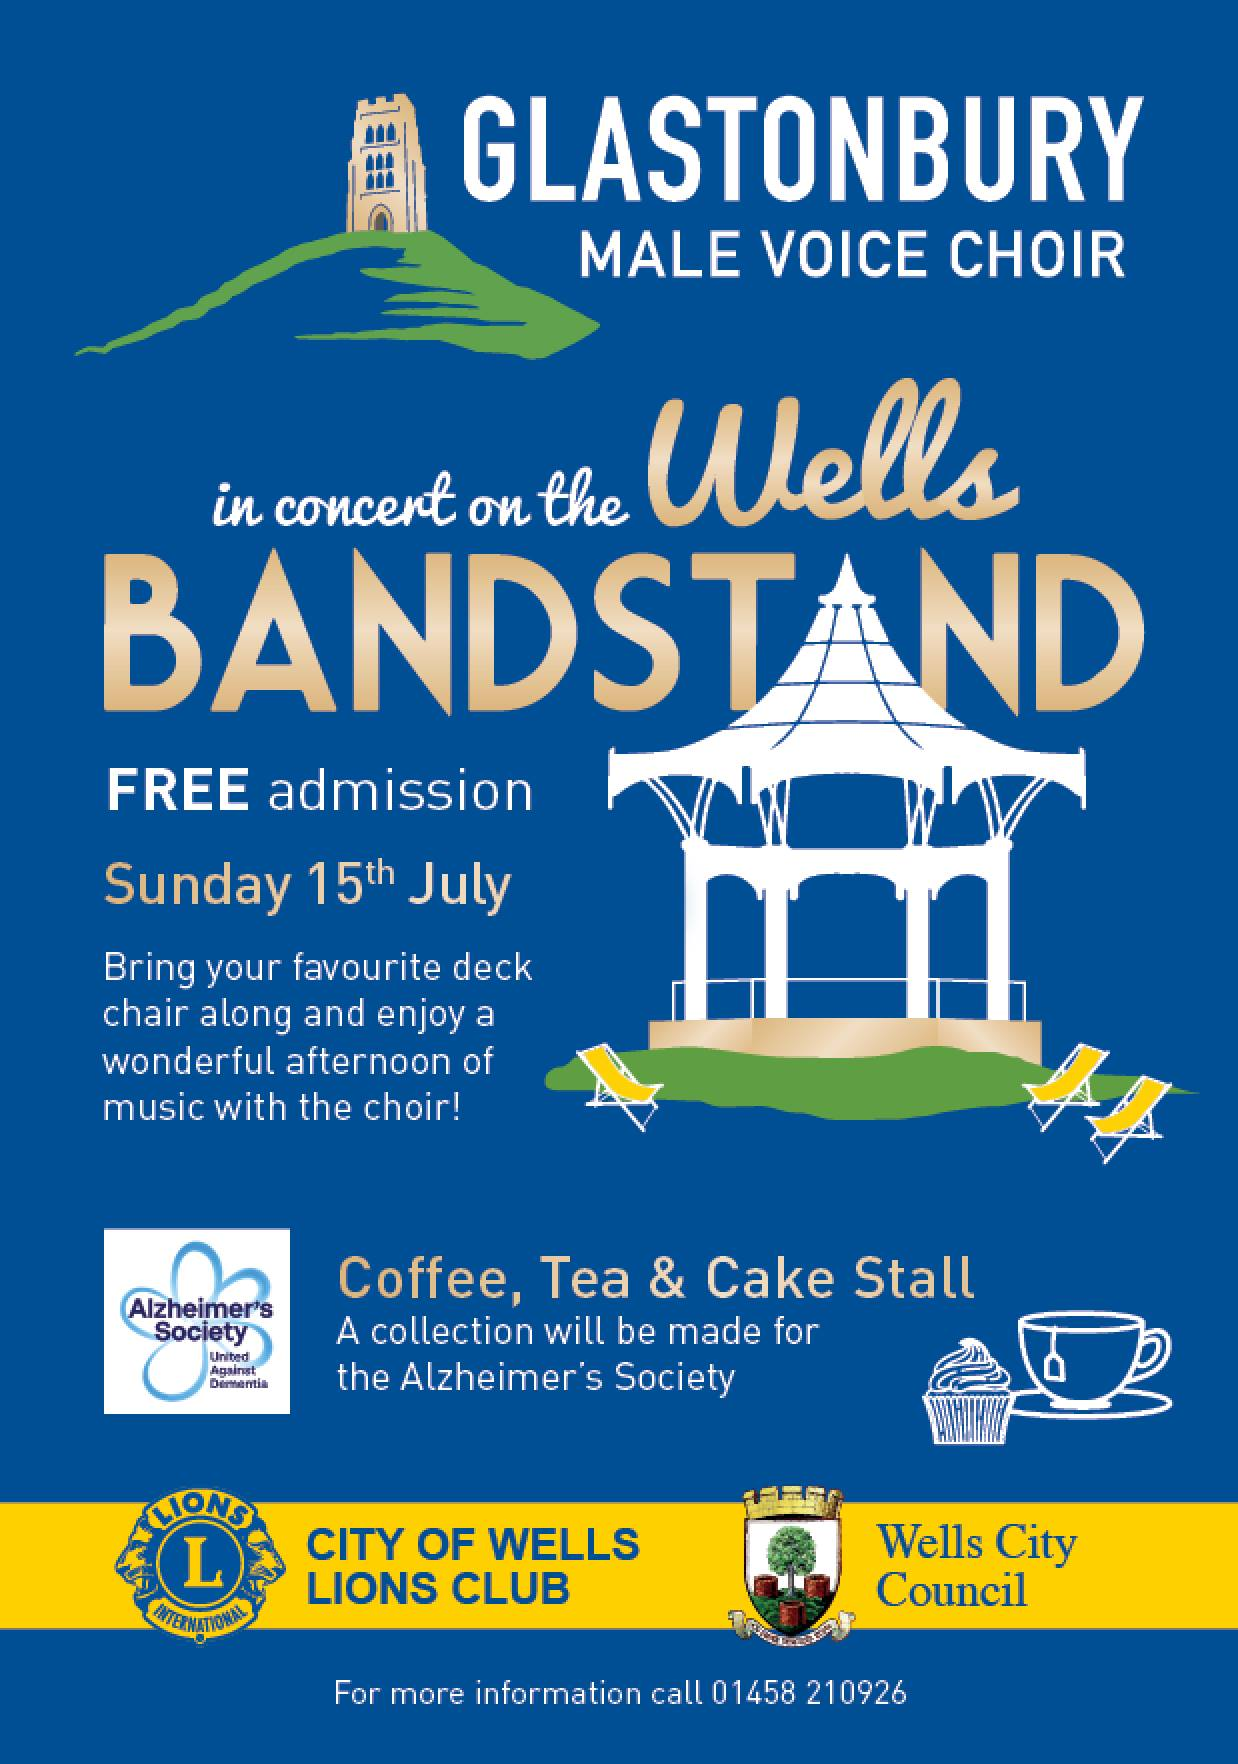 Concert on the Wells Band Stand